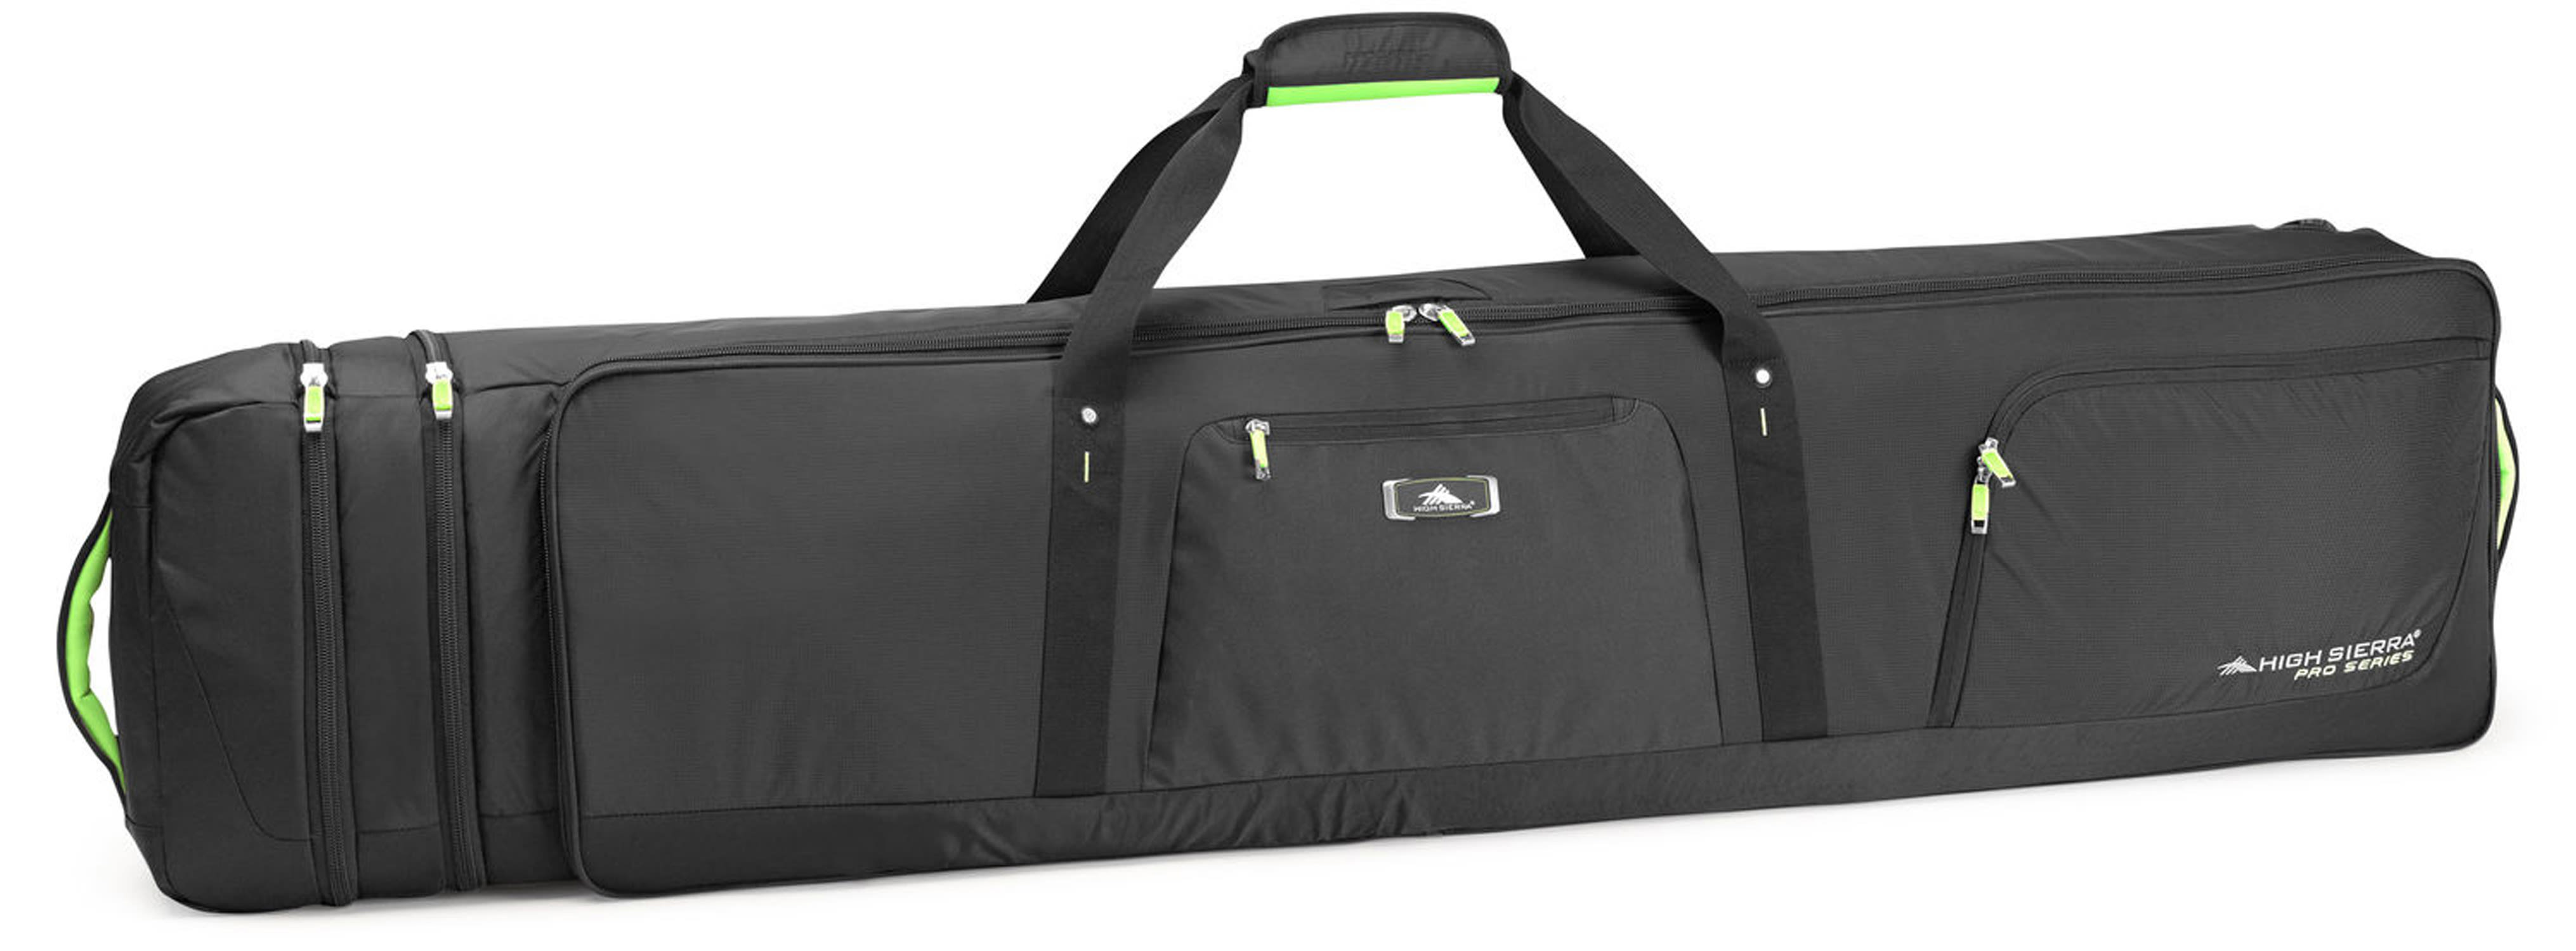 610bd8bb190 High Sierra Pro Series 2 Double Adjustable Wheeled Ski Snowboard Bag -  thumbnail 1